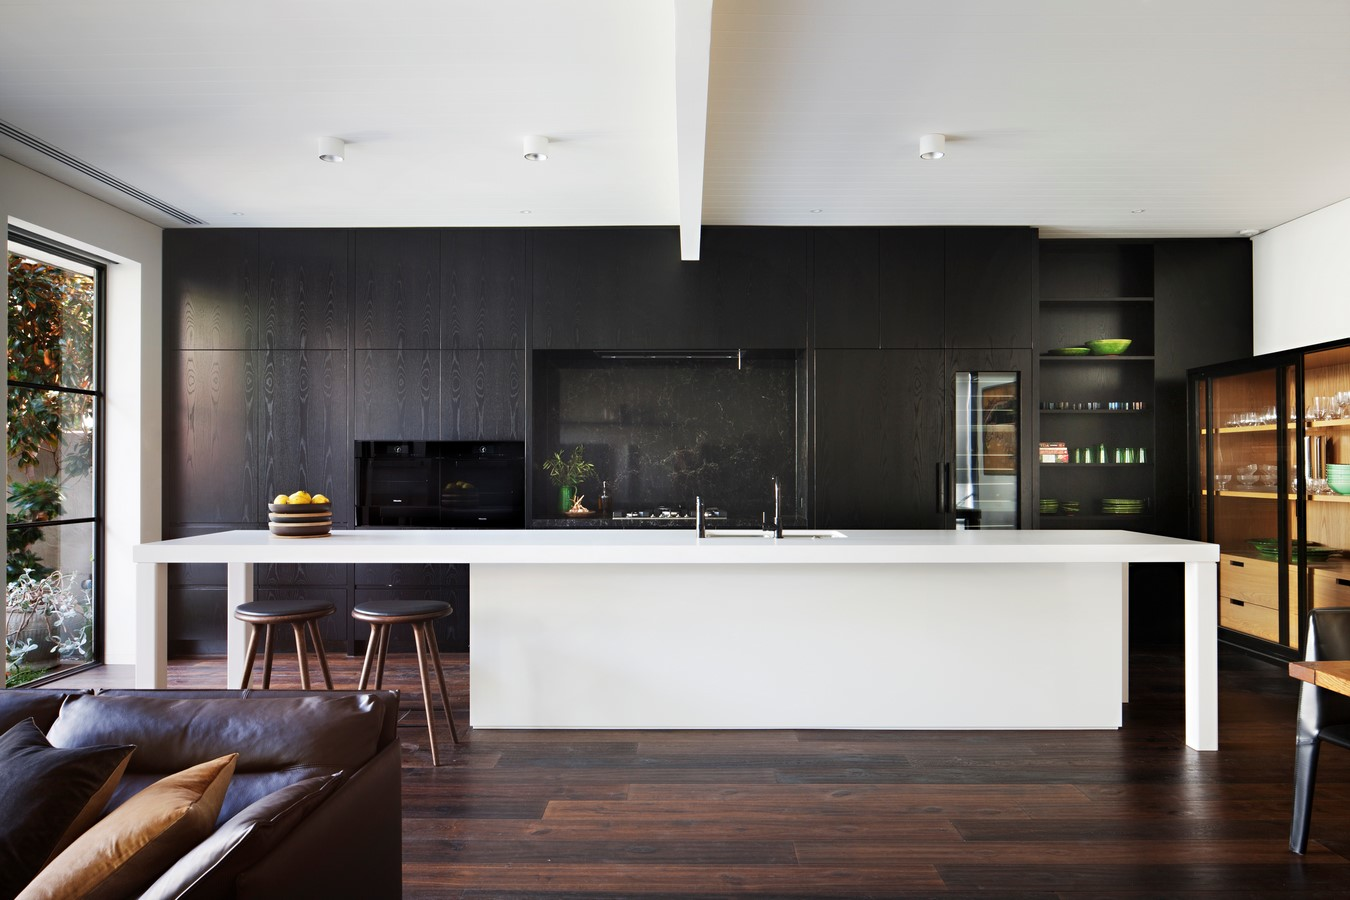 Albert Park House by Hindley & Co - Sheet1